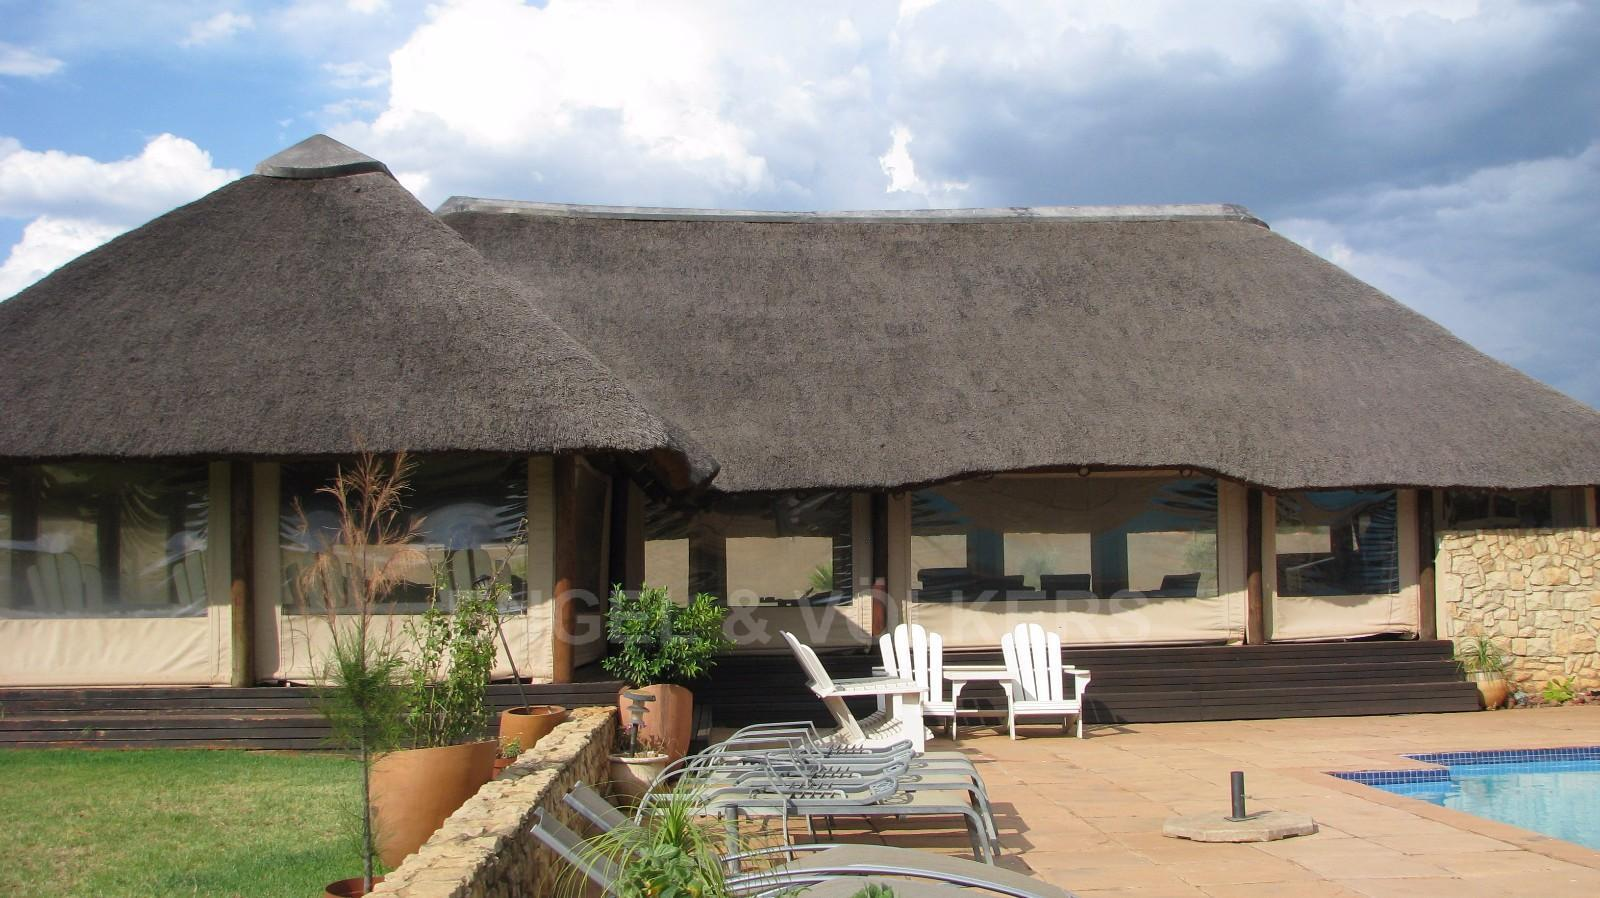 House in Melodie A/h - Thatch lapa with see through canvasses